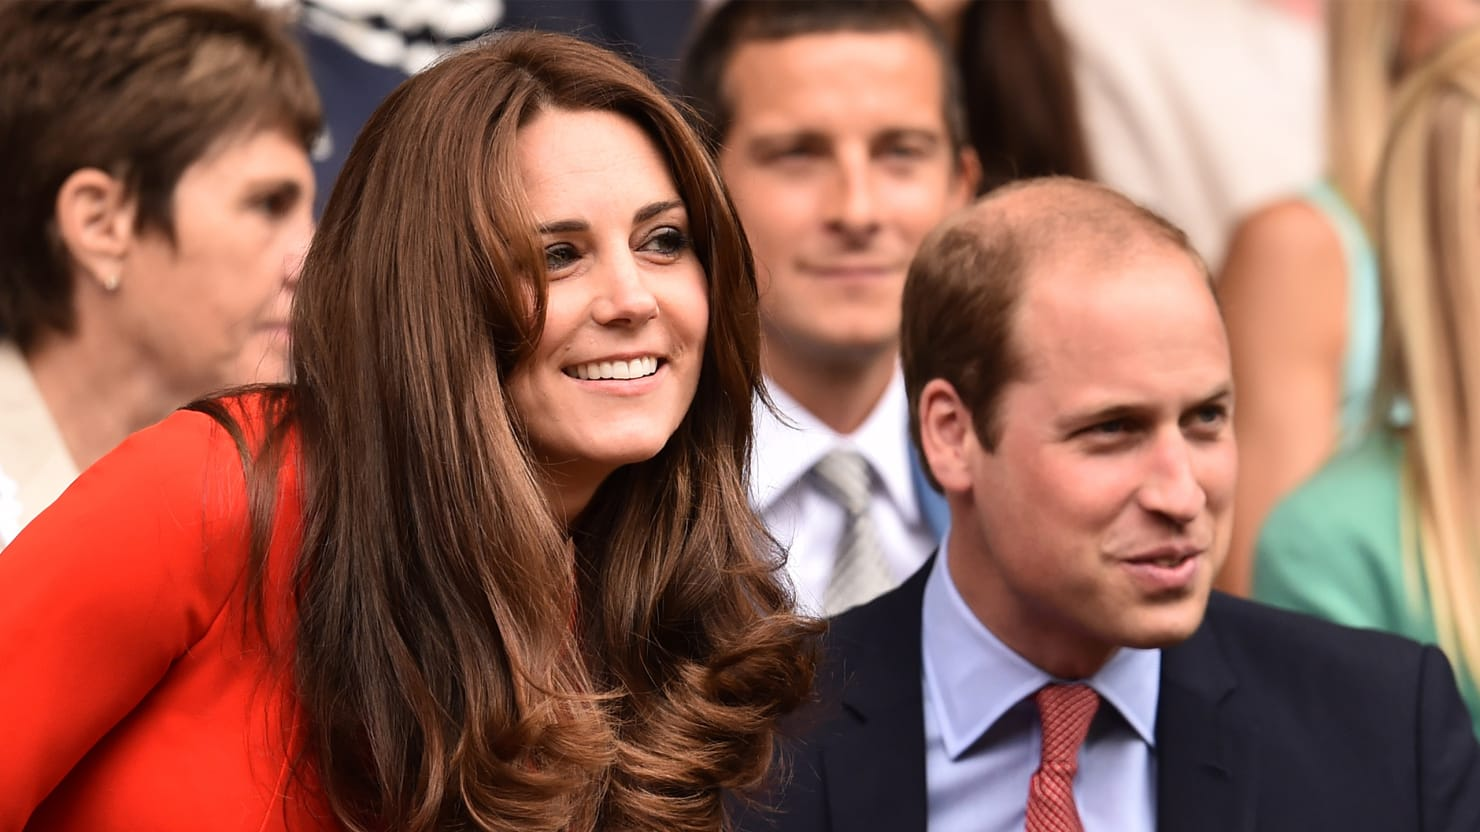 More Kids For Will and Kate in 2016? The Year Ahead For The Royals